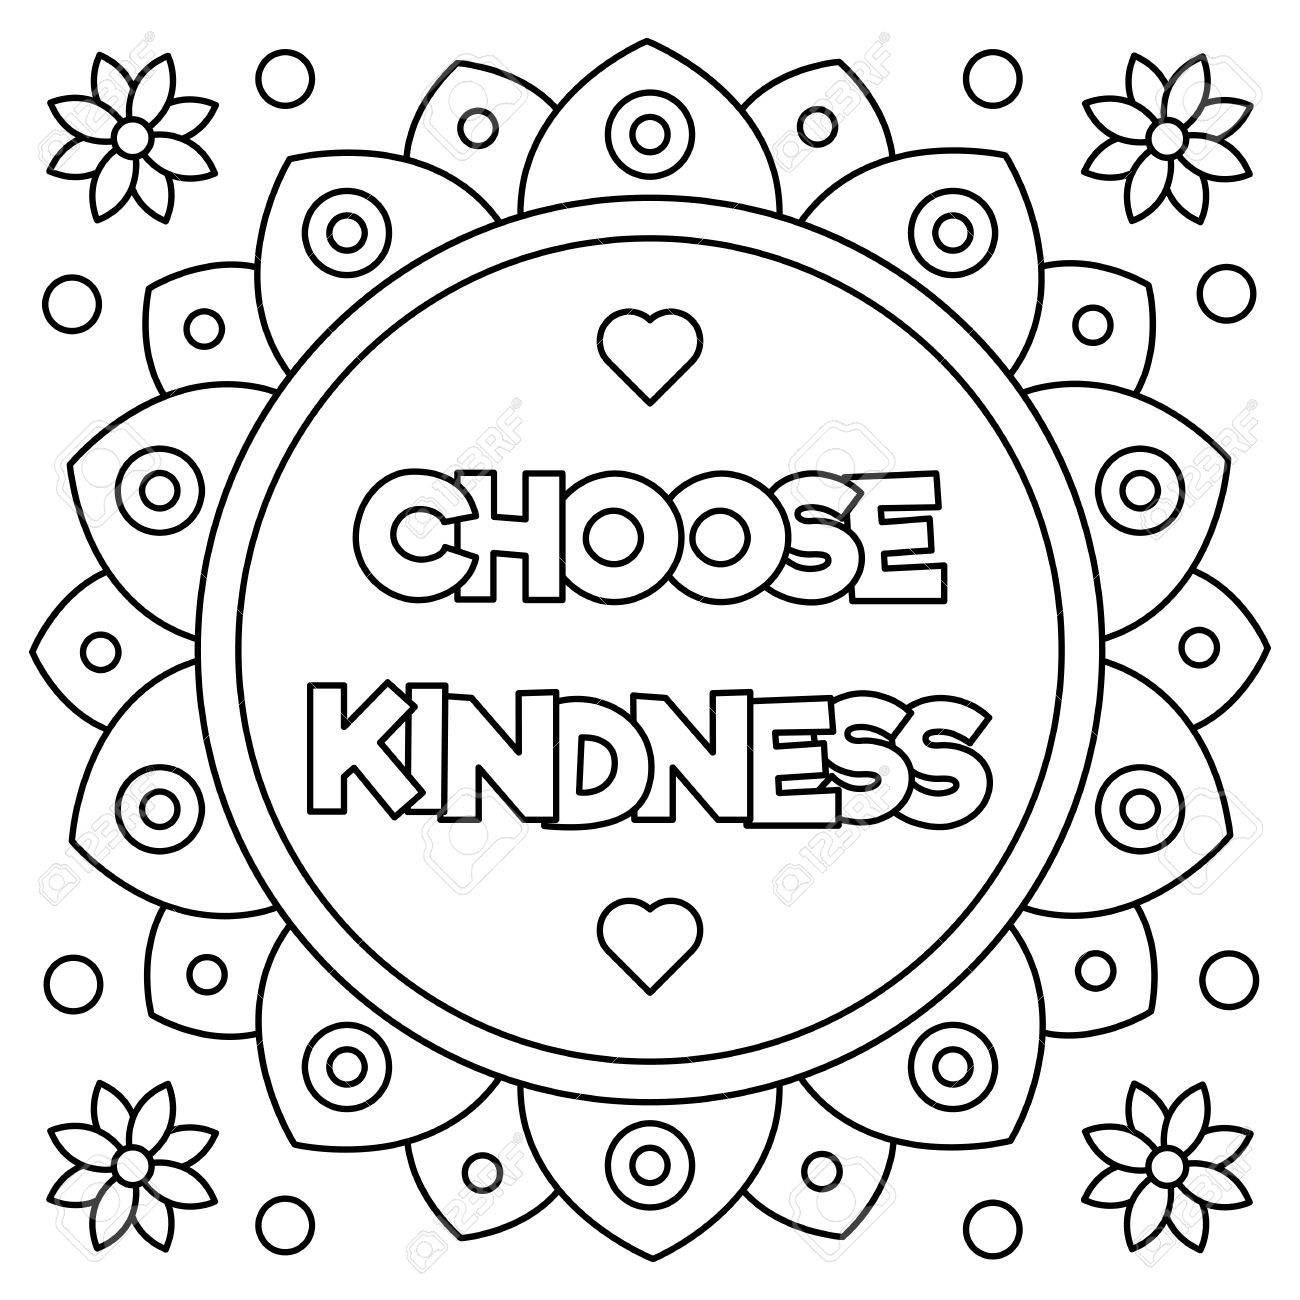 Choose Kindness Coloring Page Vector Illustration Printable Coloring Pages Love Coloring Pages Free Printable Coloring Pages